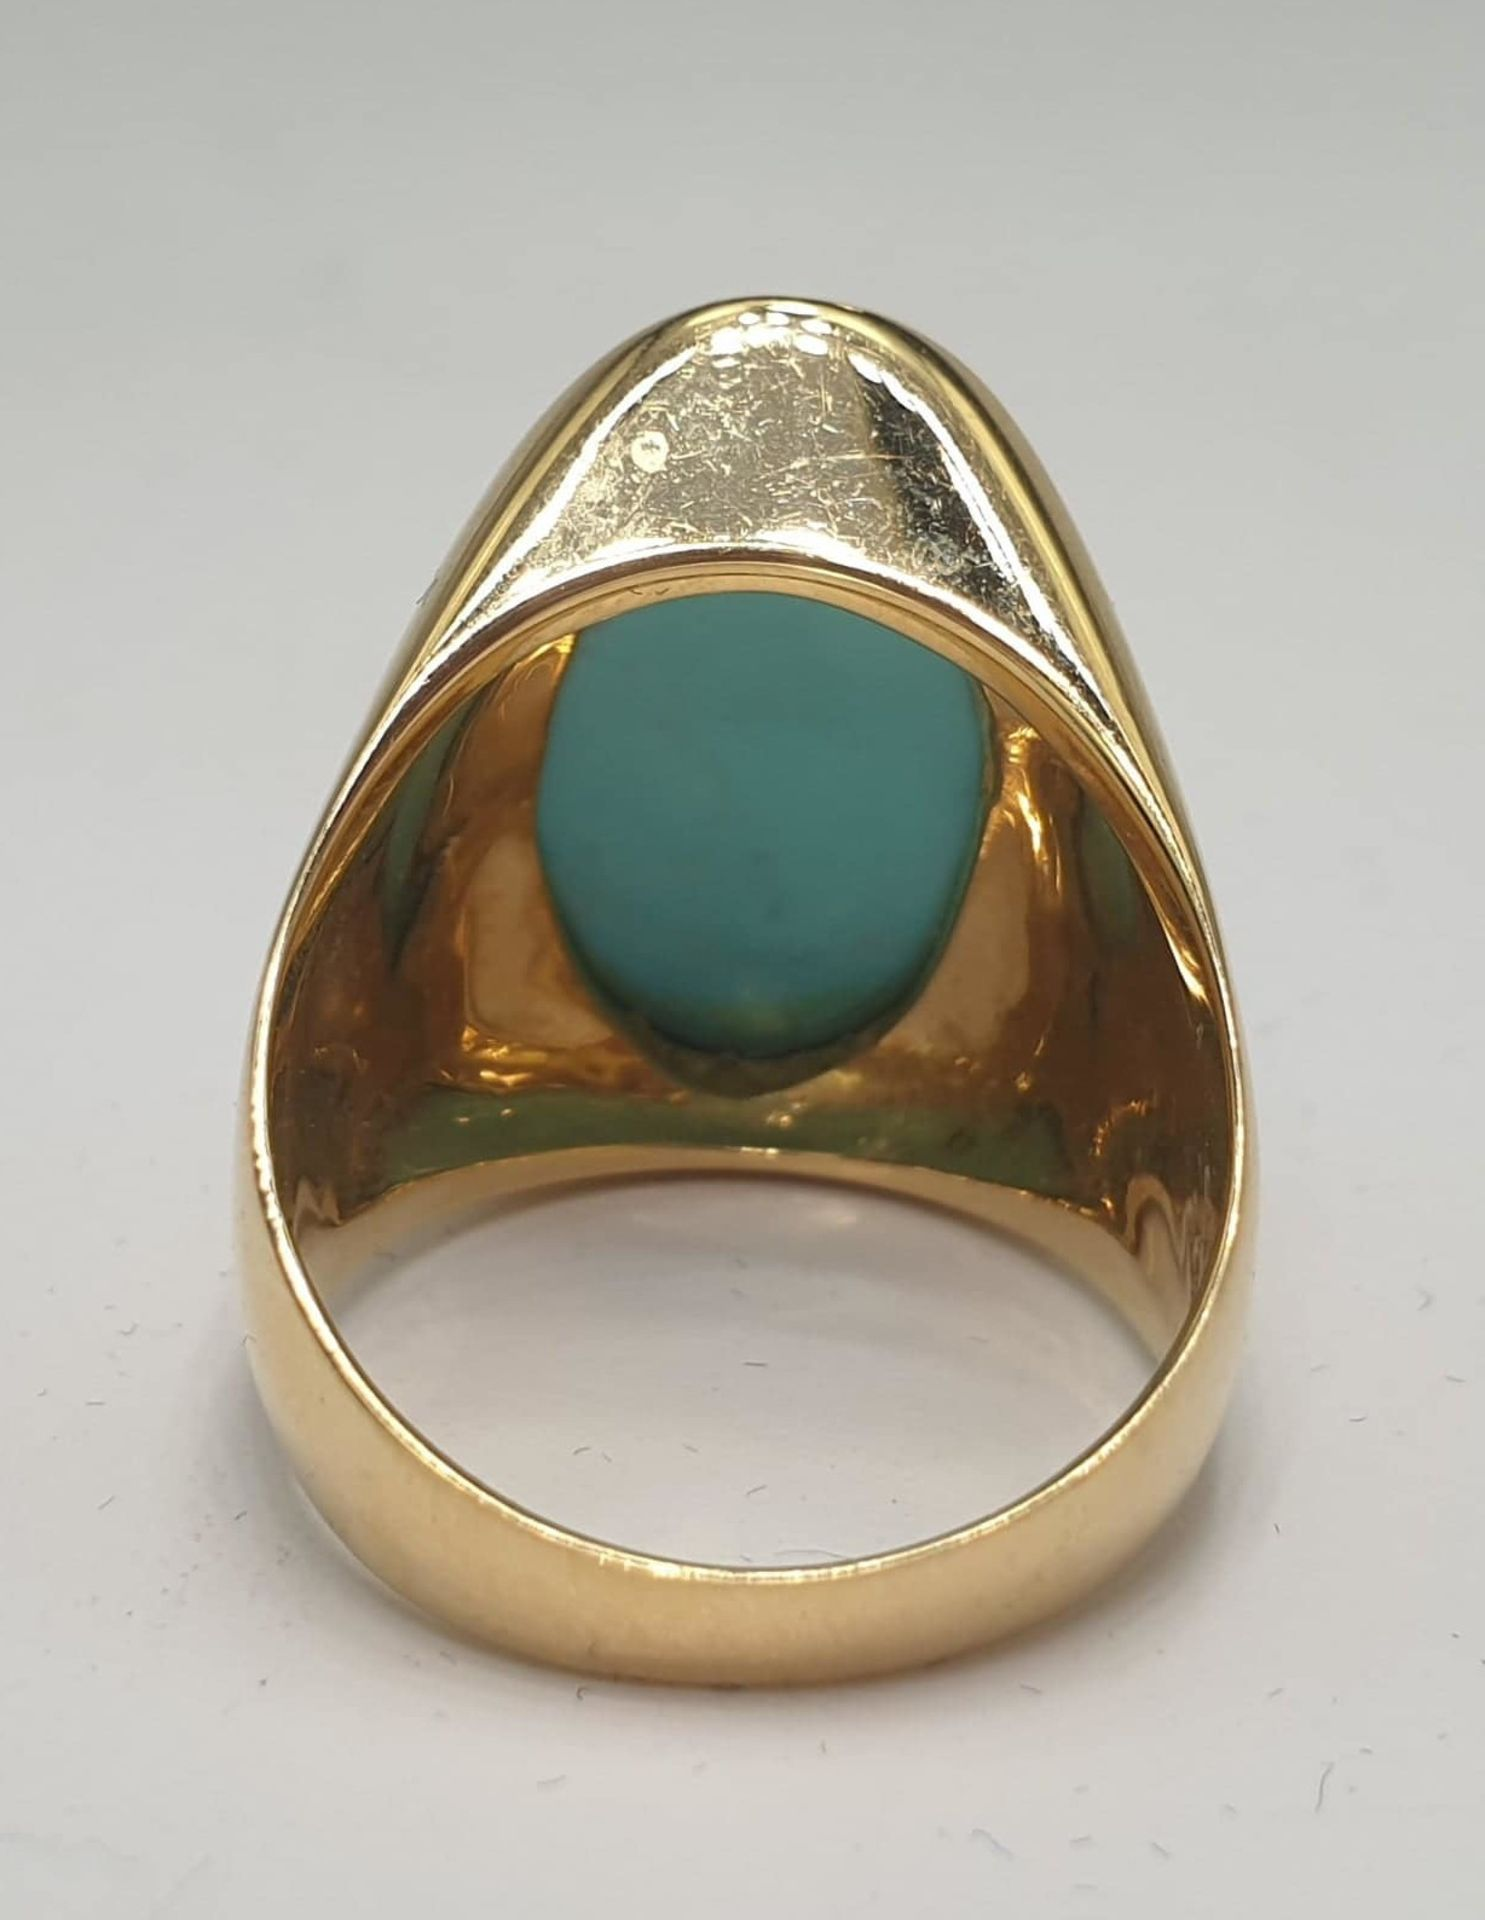 Ring & Ear Clips | Turquoise | 750 (18k) Gold - Image 3 of 6